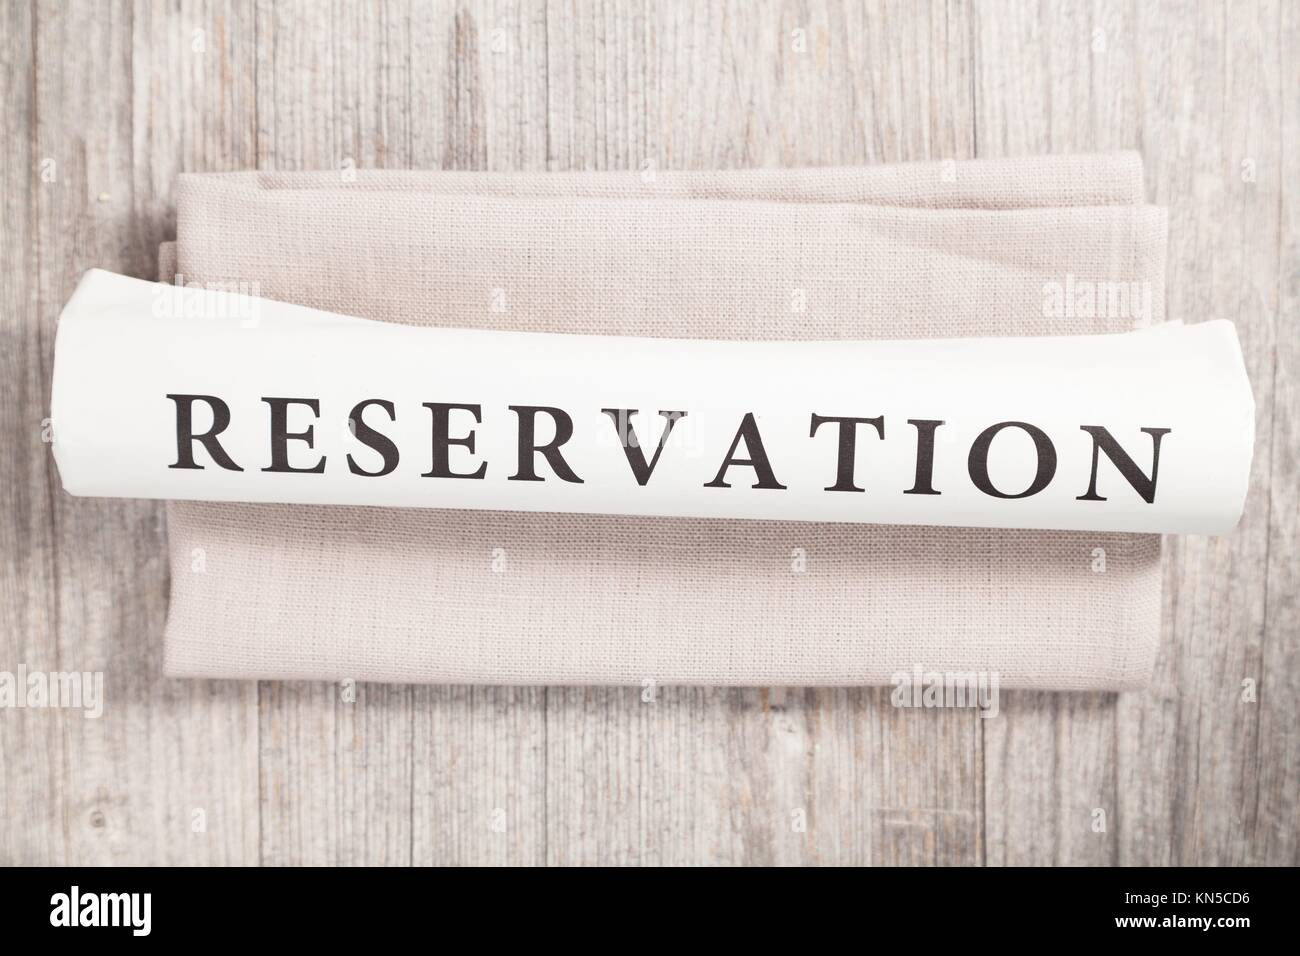 reservation written on a newspaper. - Stock Image